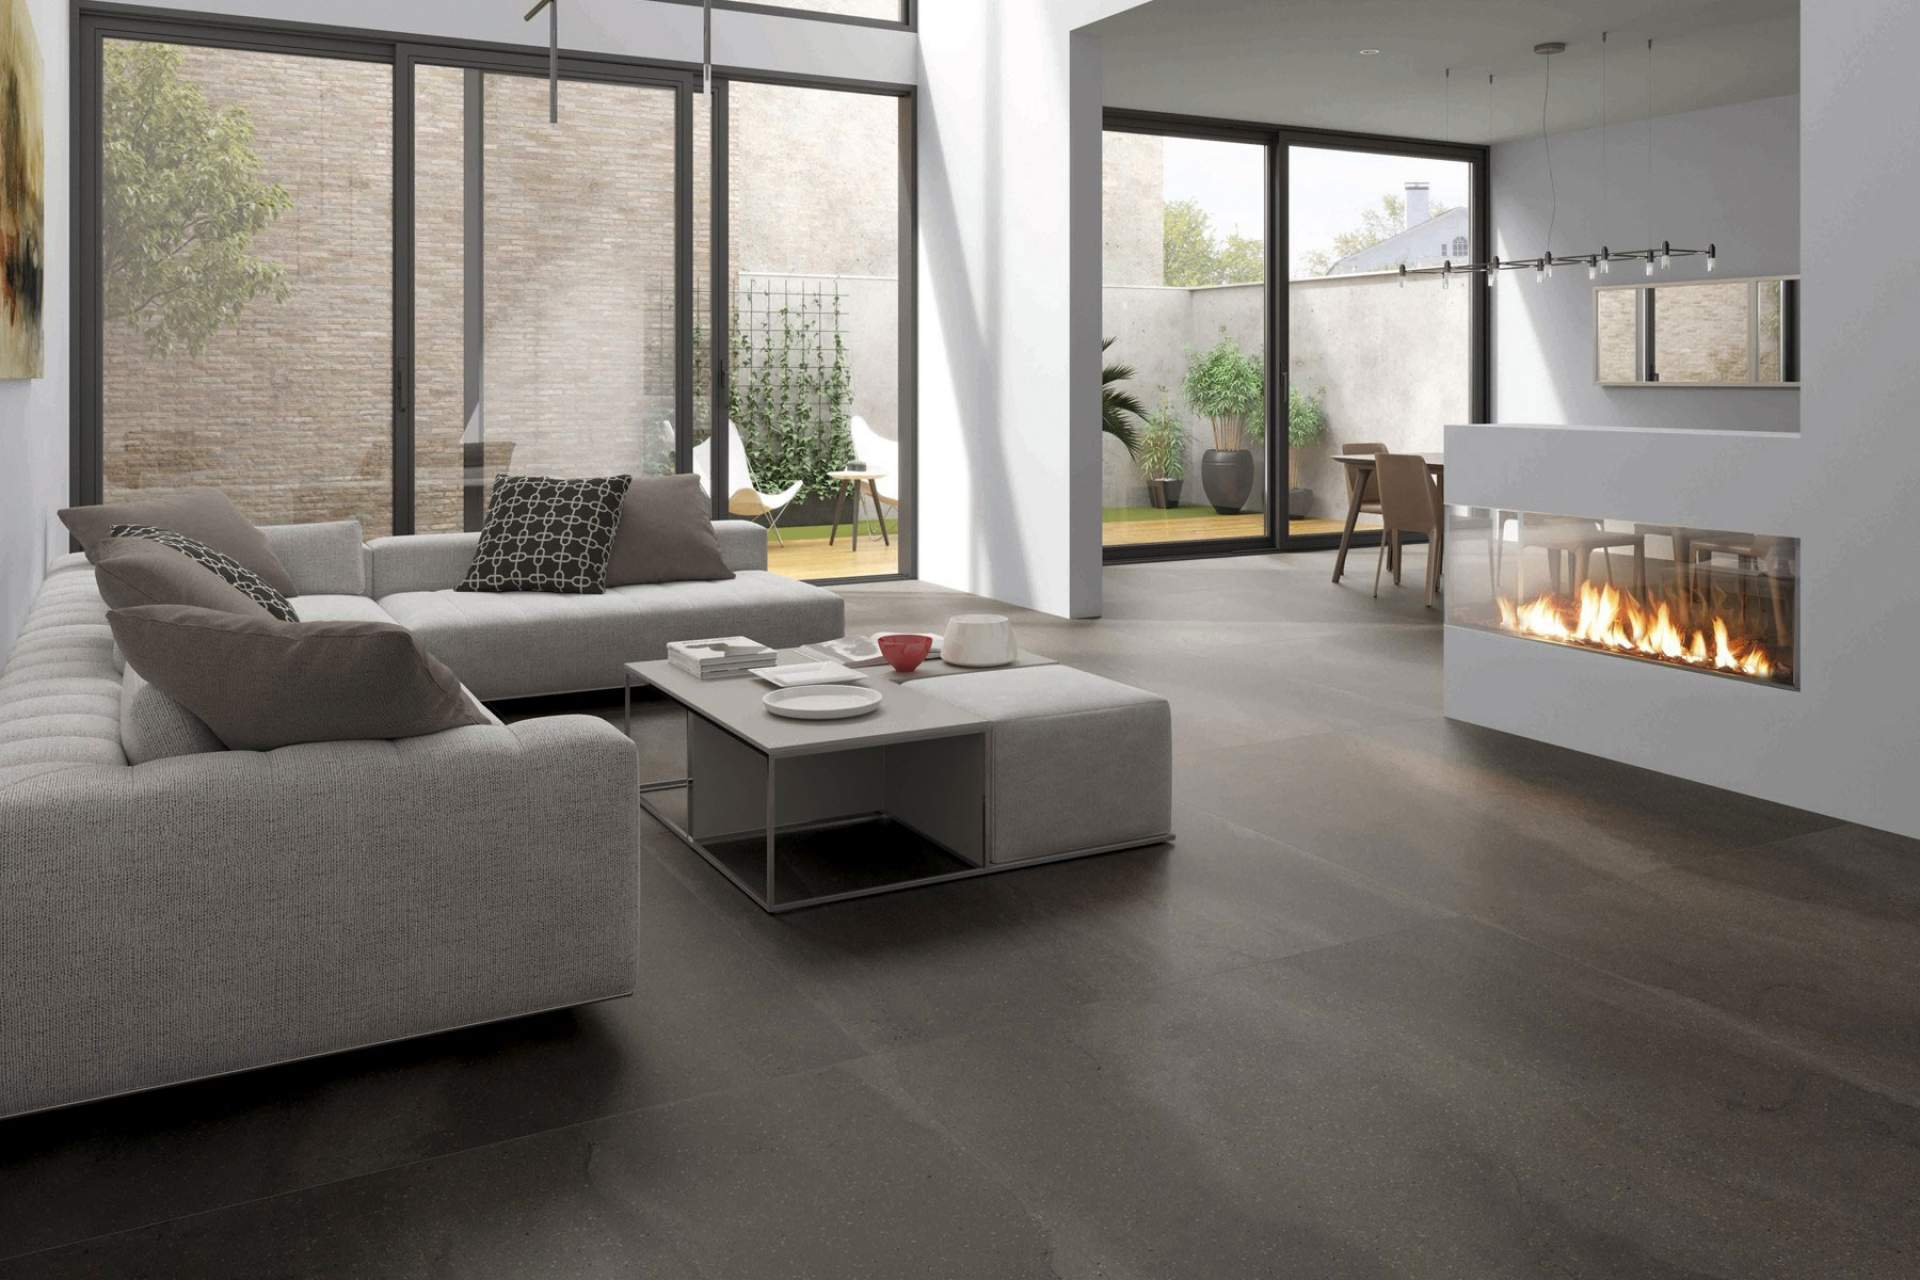 Fusion living room setting using grey natural 100 x 100 tile